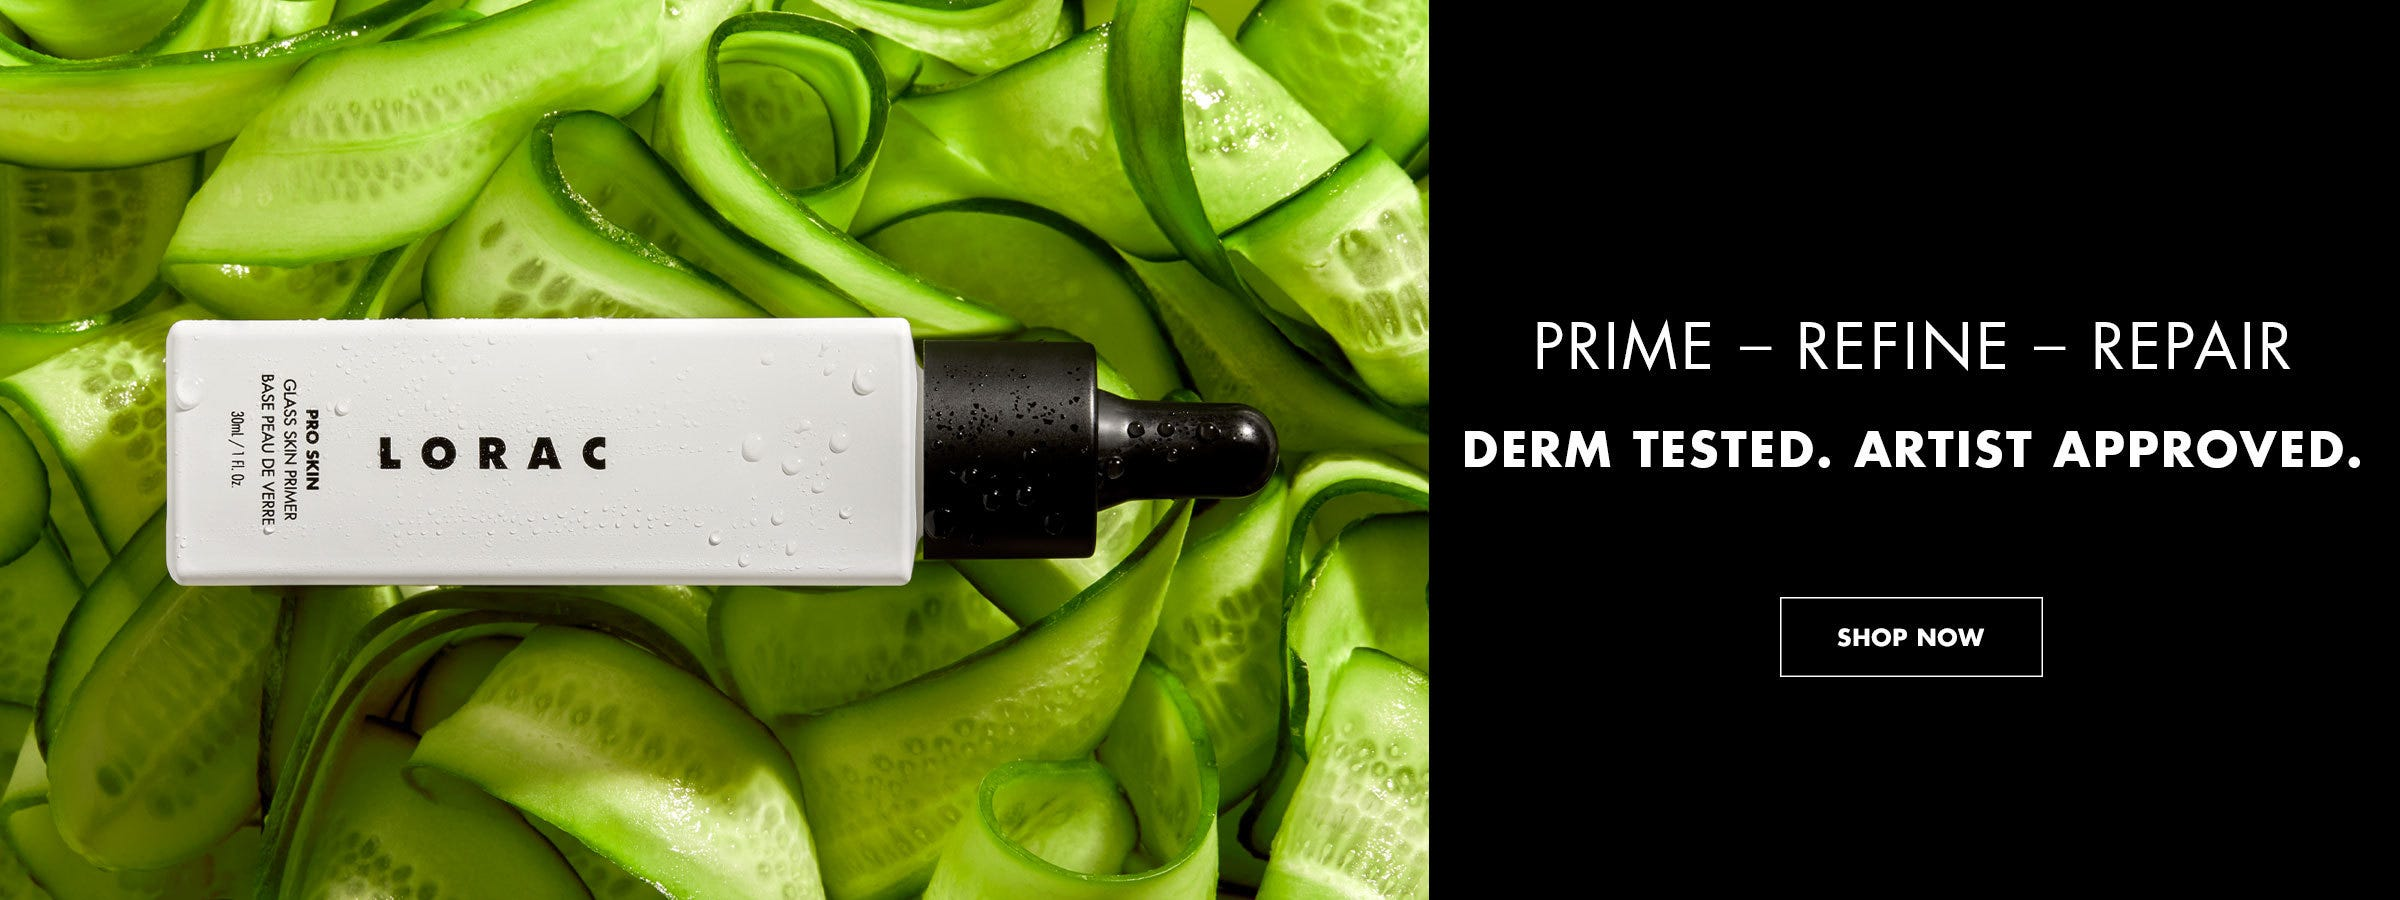 Prime Refine Repair | Derm Tested. Artist Approved. | SHOP NOW